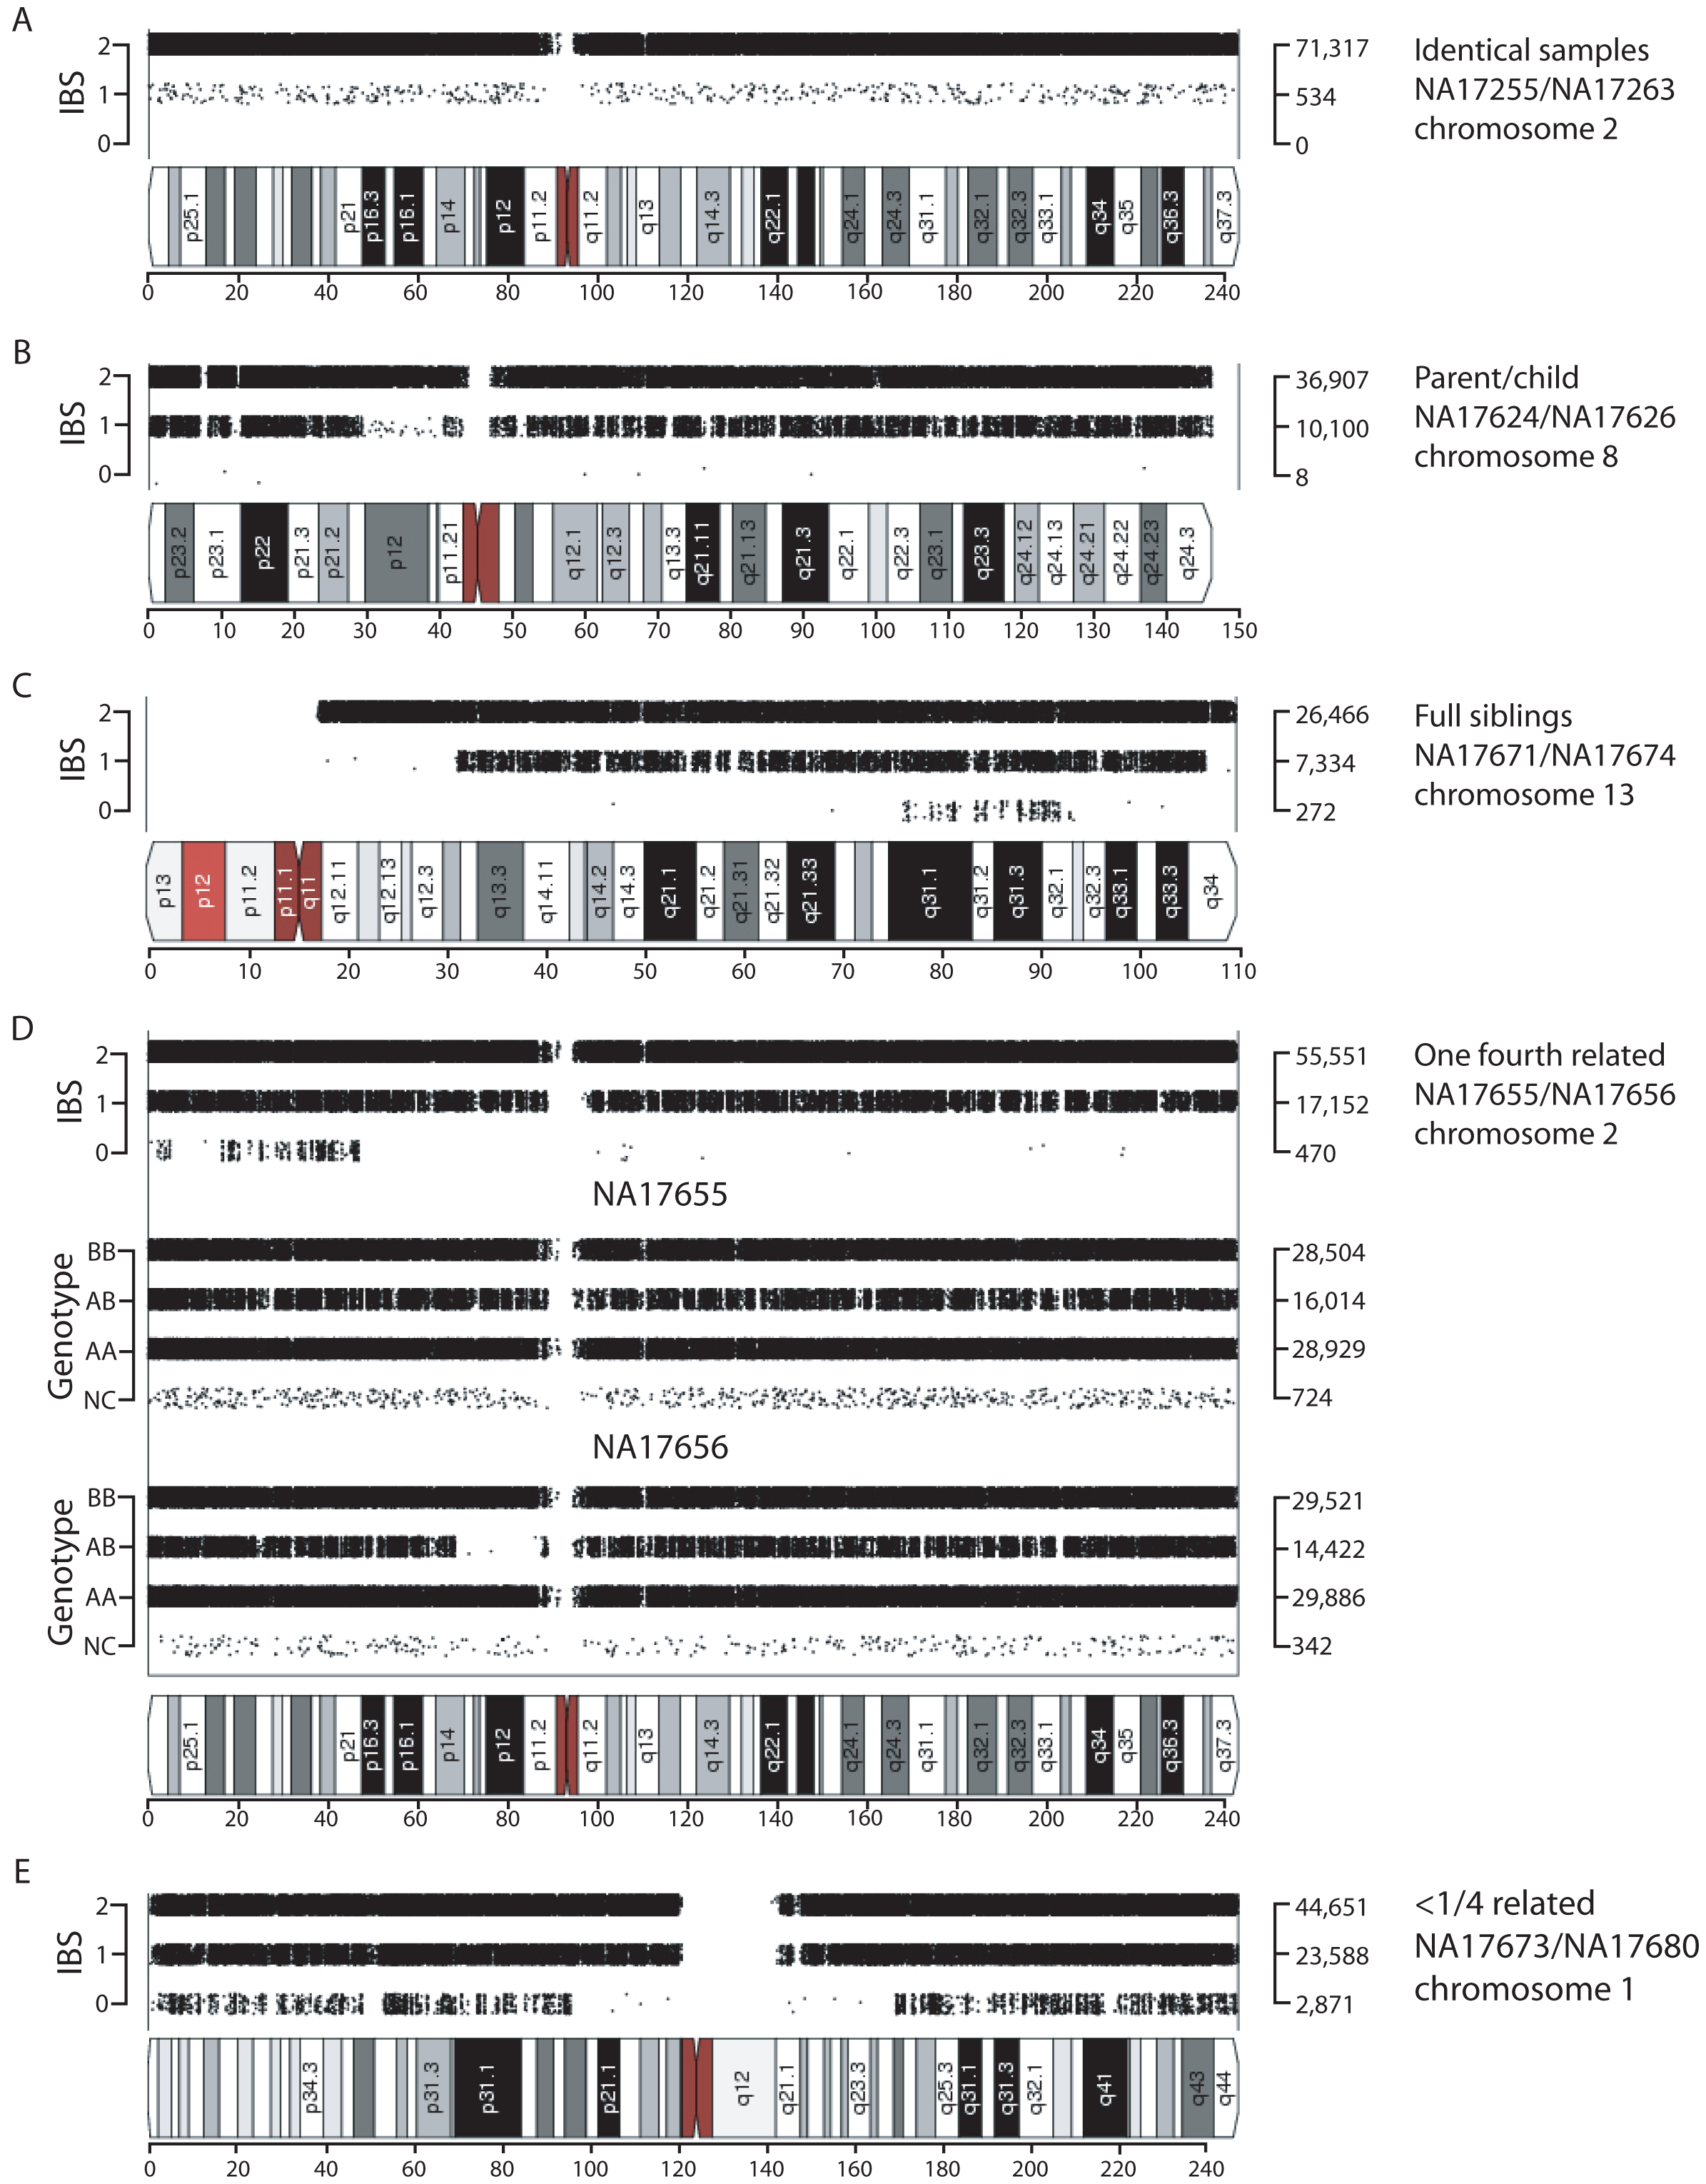 Visualization of shared chromosomal regions based on IBS for related individuals.